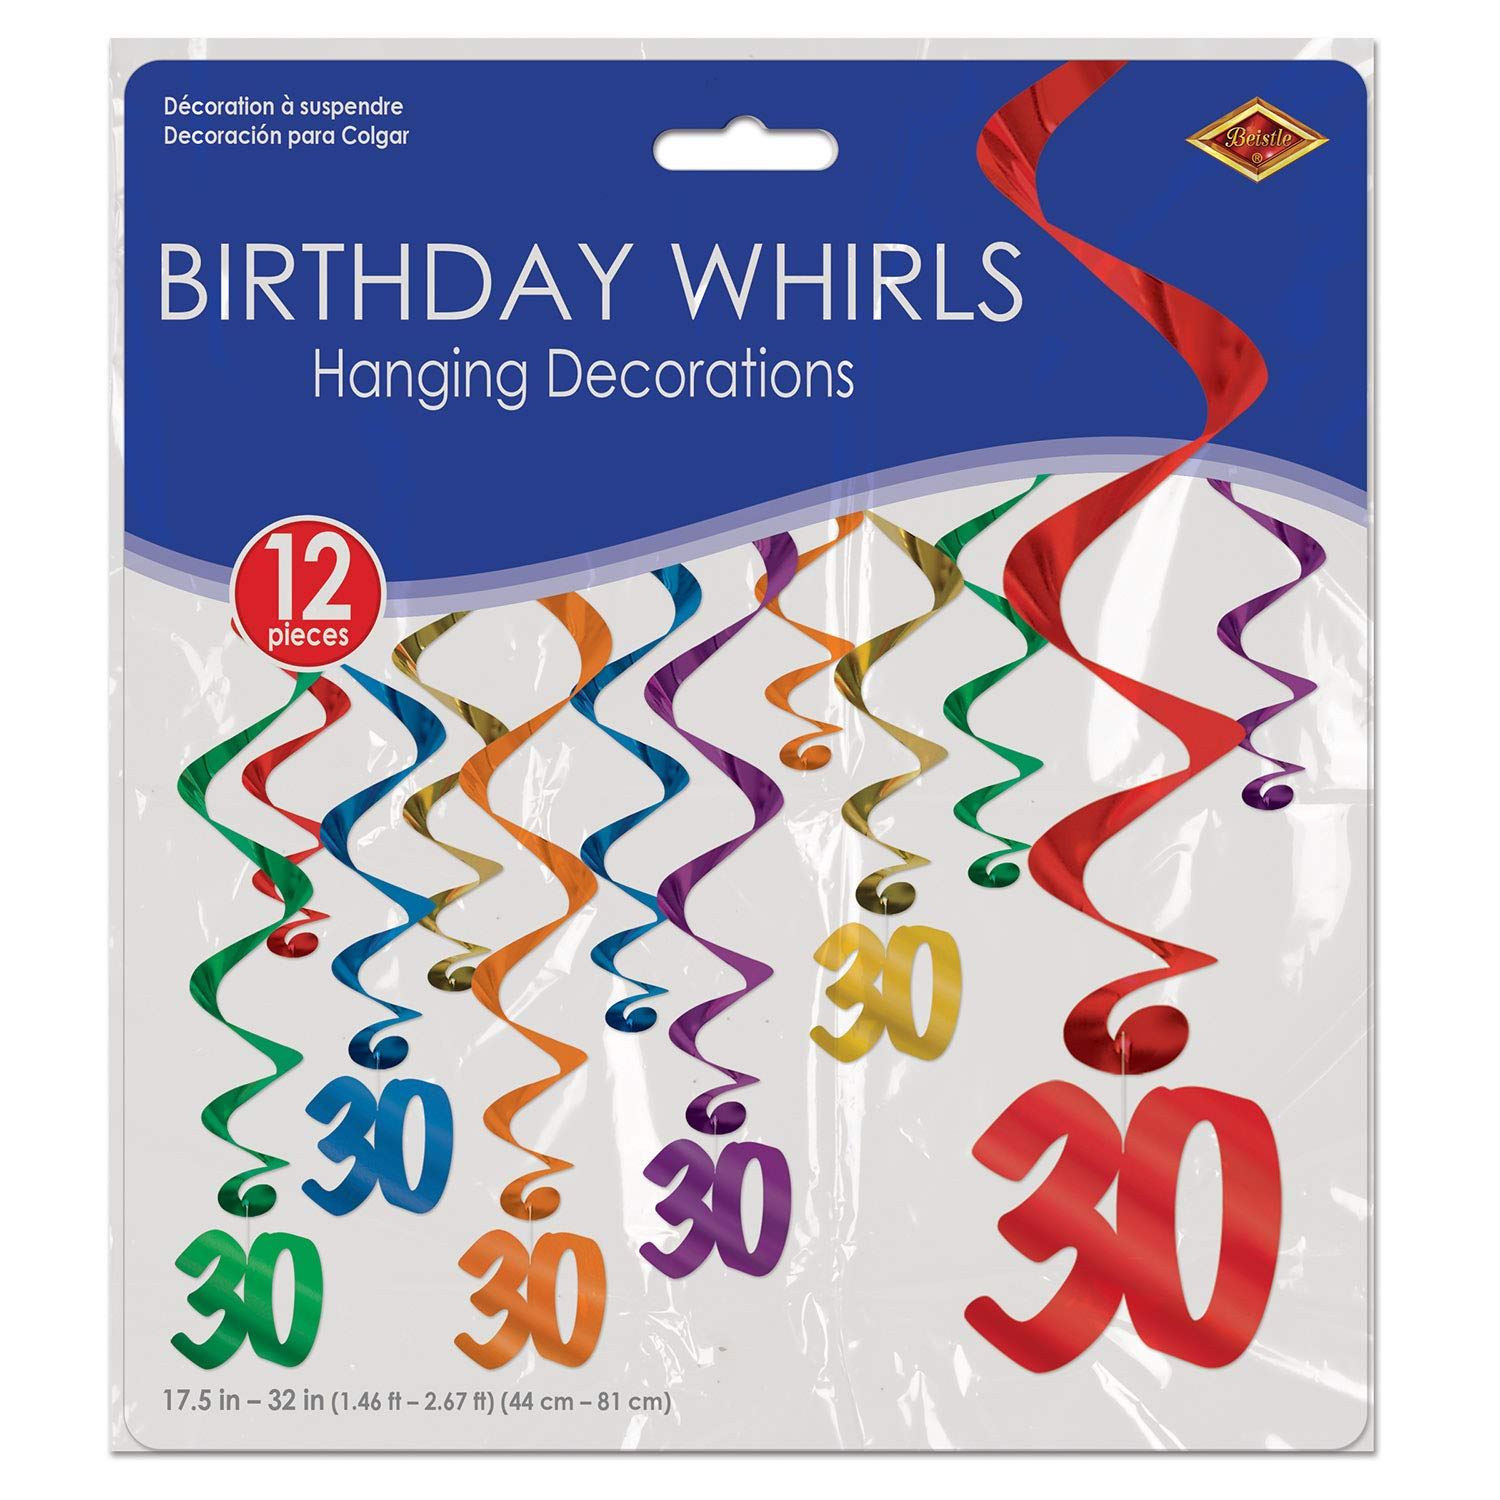 Beistle 30th Birthday Decorations Birthday Party Supplies, Assorted Metallic 30 Whirls 17.5 Inch to 32 Inch, Pack 72